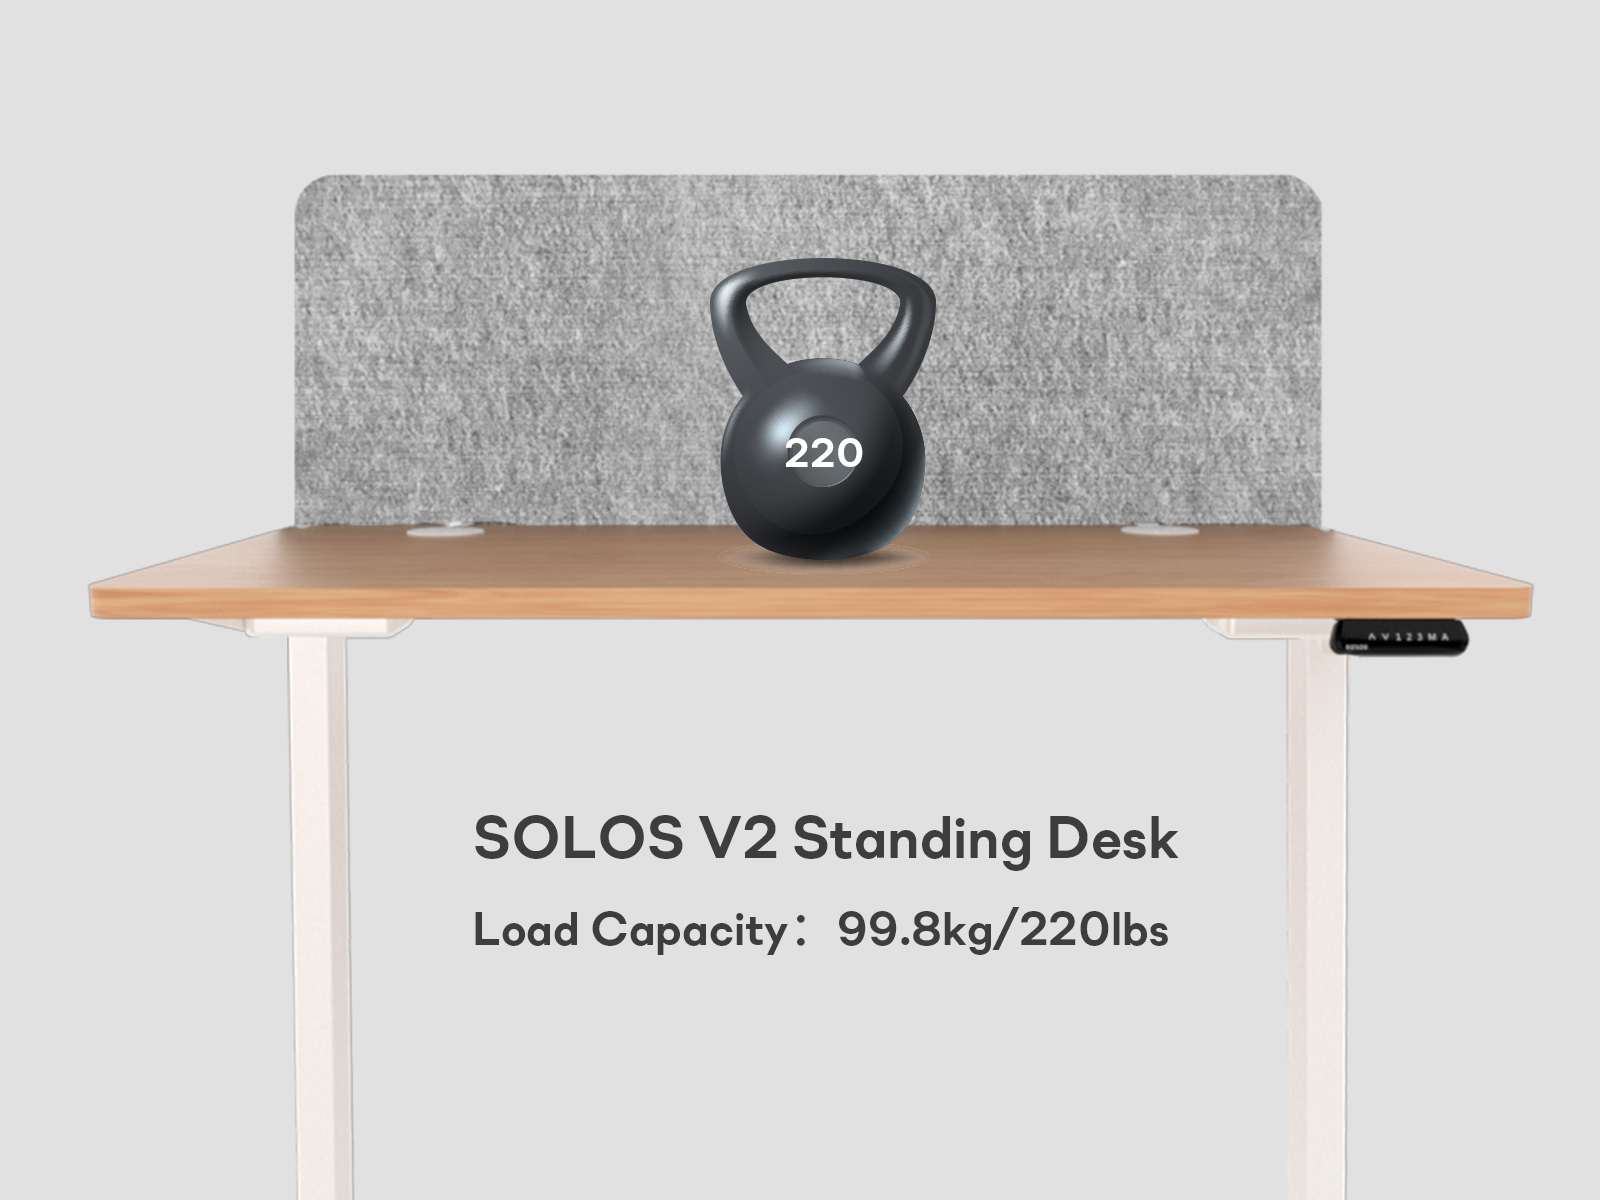 standing desk weight capacity